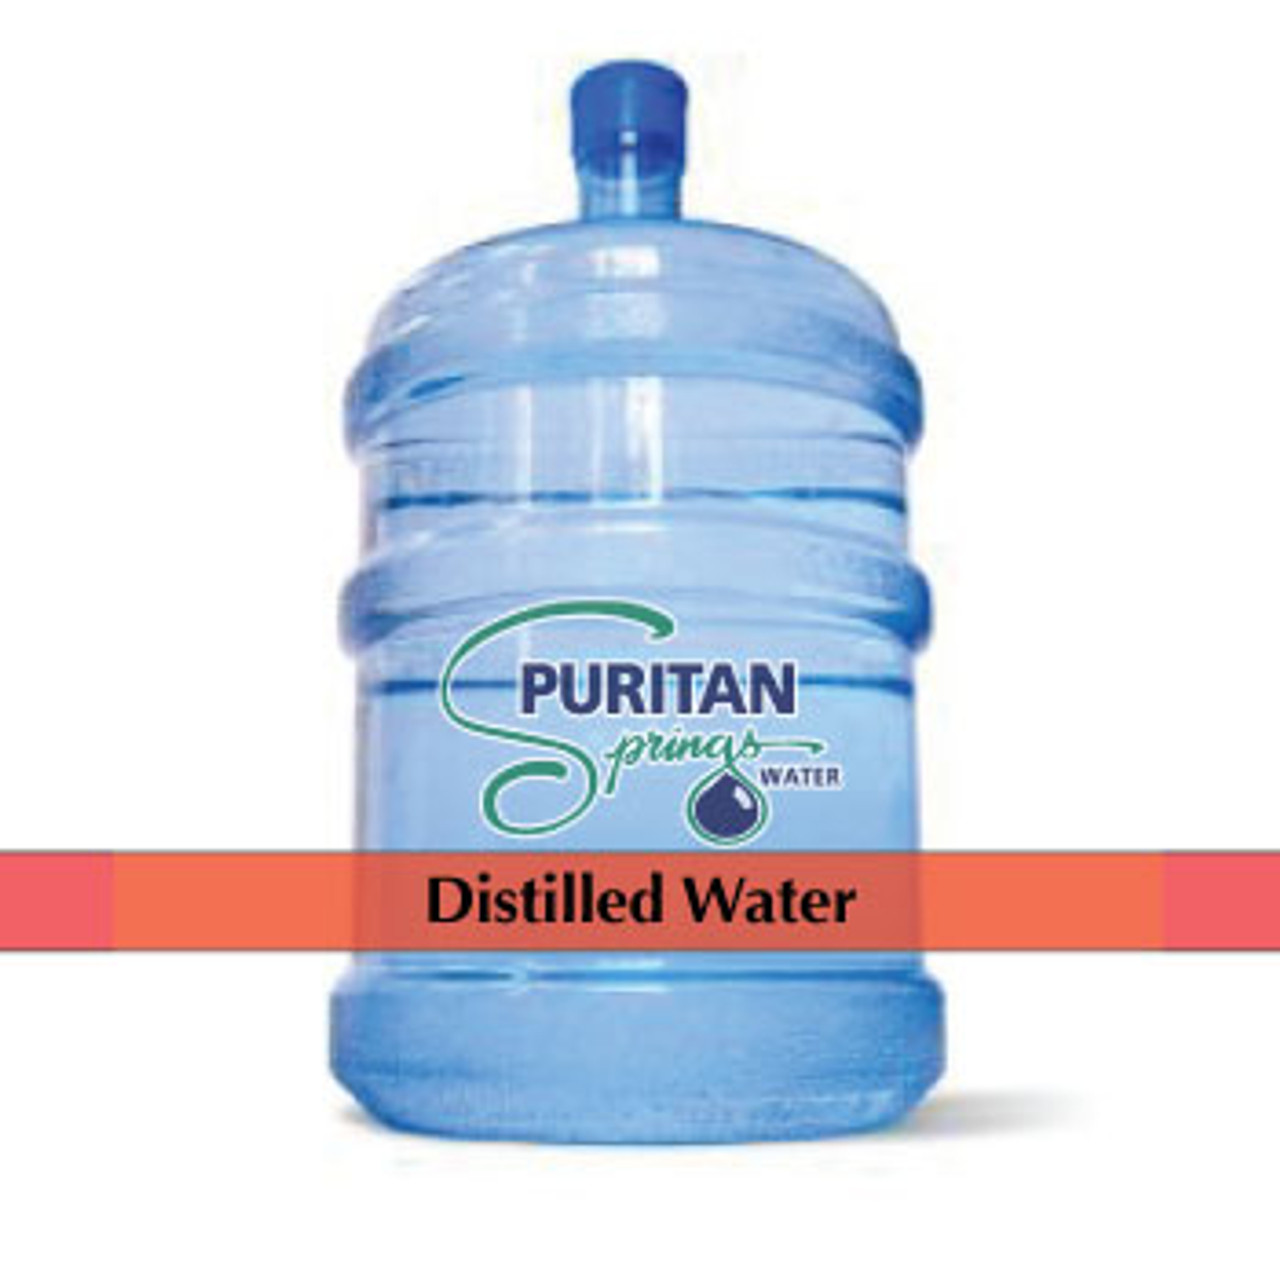 Puritan Springs - Distilled Water - 5 Gallon  Red Cap